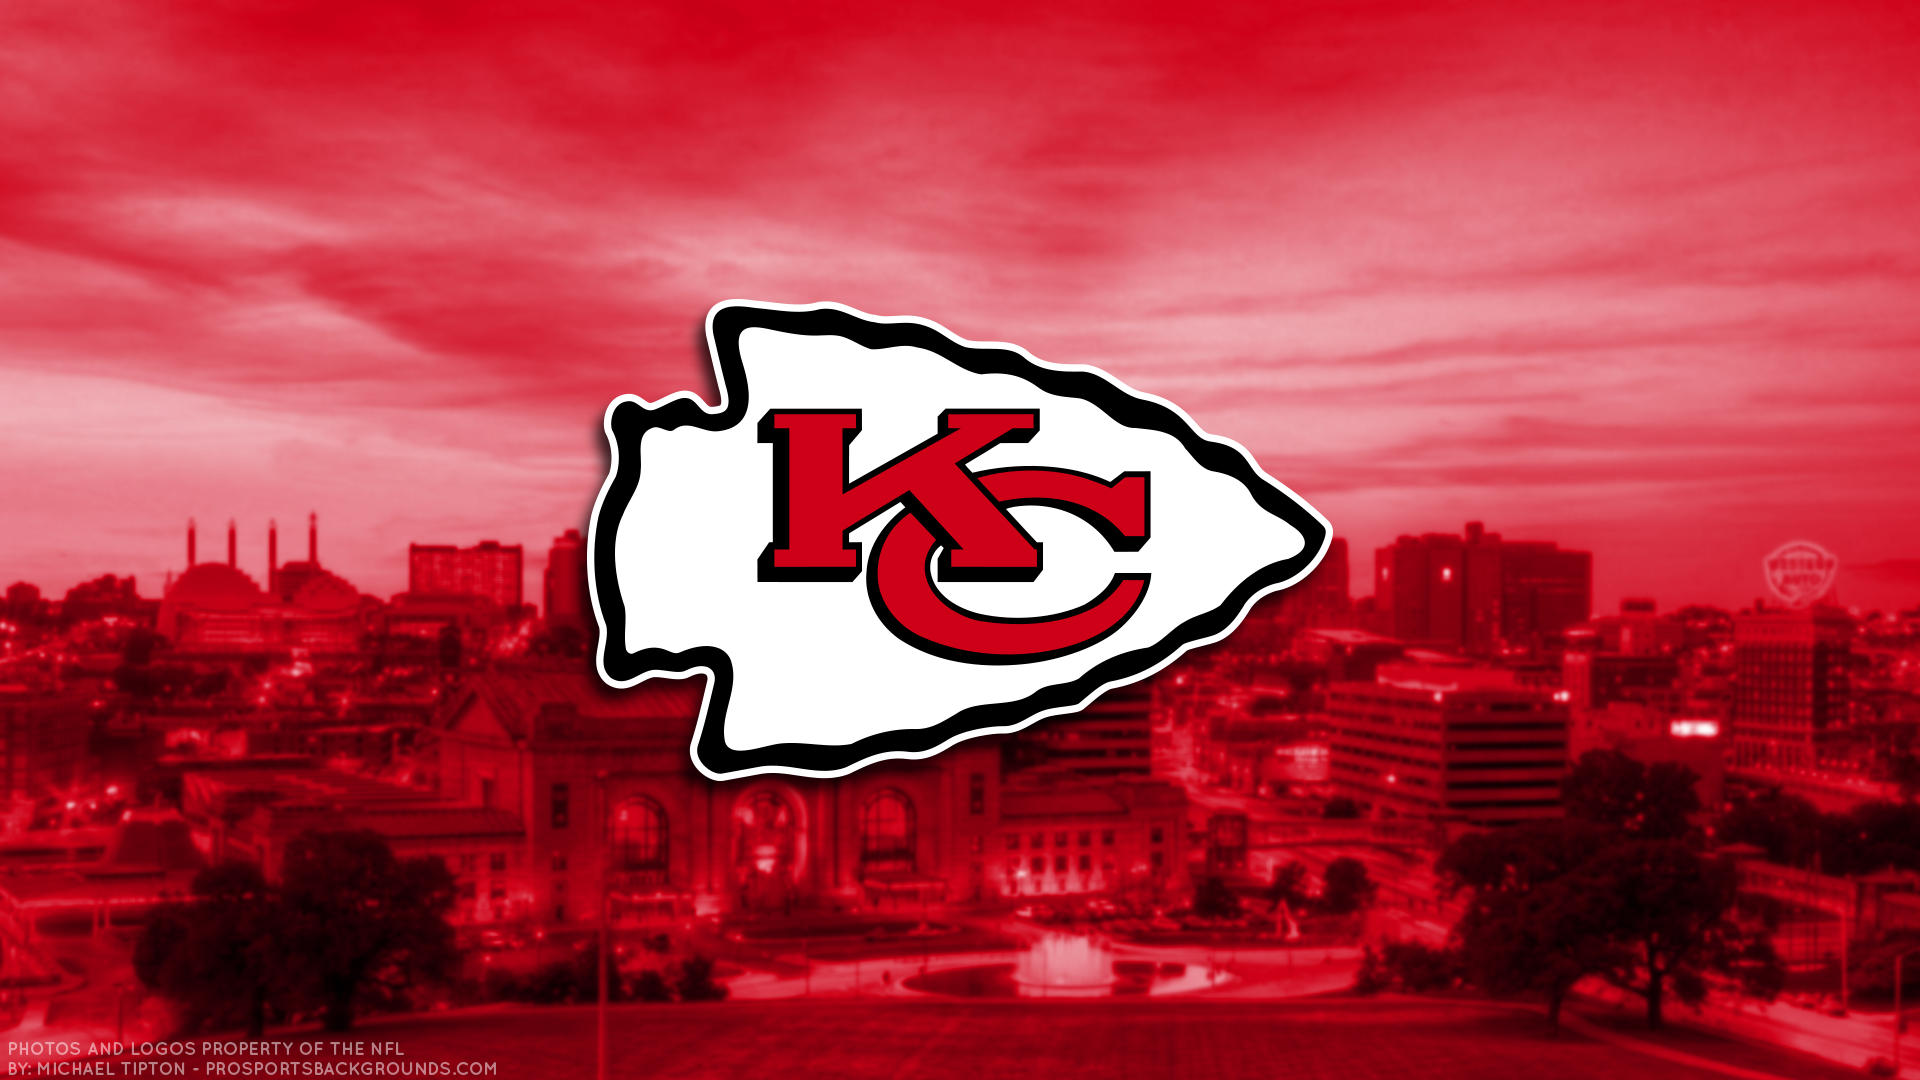 Pin By Lauren Renfrow On To Live Die In Kcmo Chiefs Wallpaper Kansas City Chiefs Kansas City Chiefs Logo